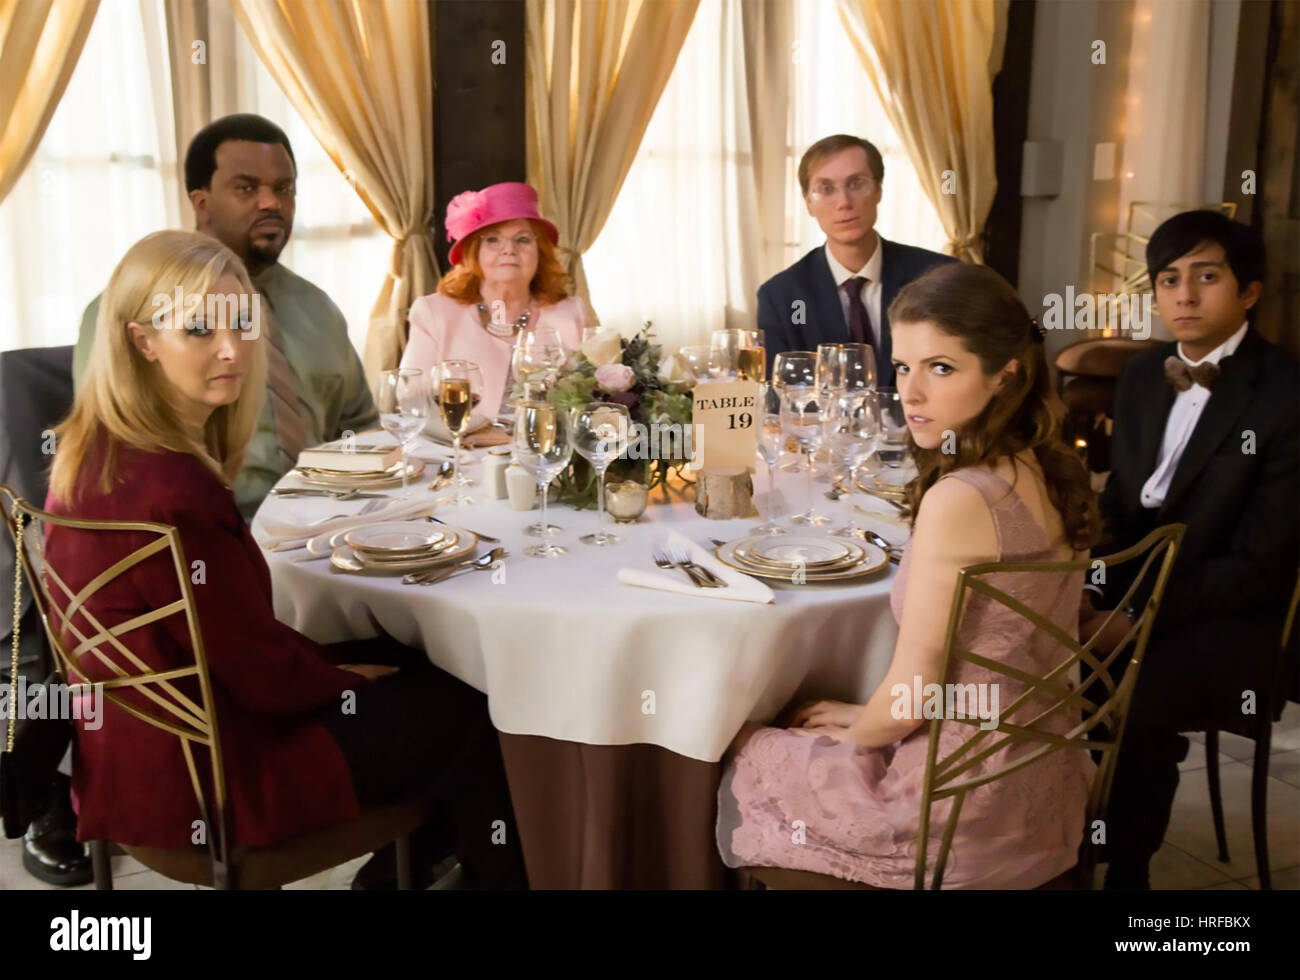 TABLE 19  Fox Searchlight Pictures 2017 film with Anna Kendrick at right and Lisa Kudrow at left - Stock Image